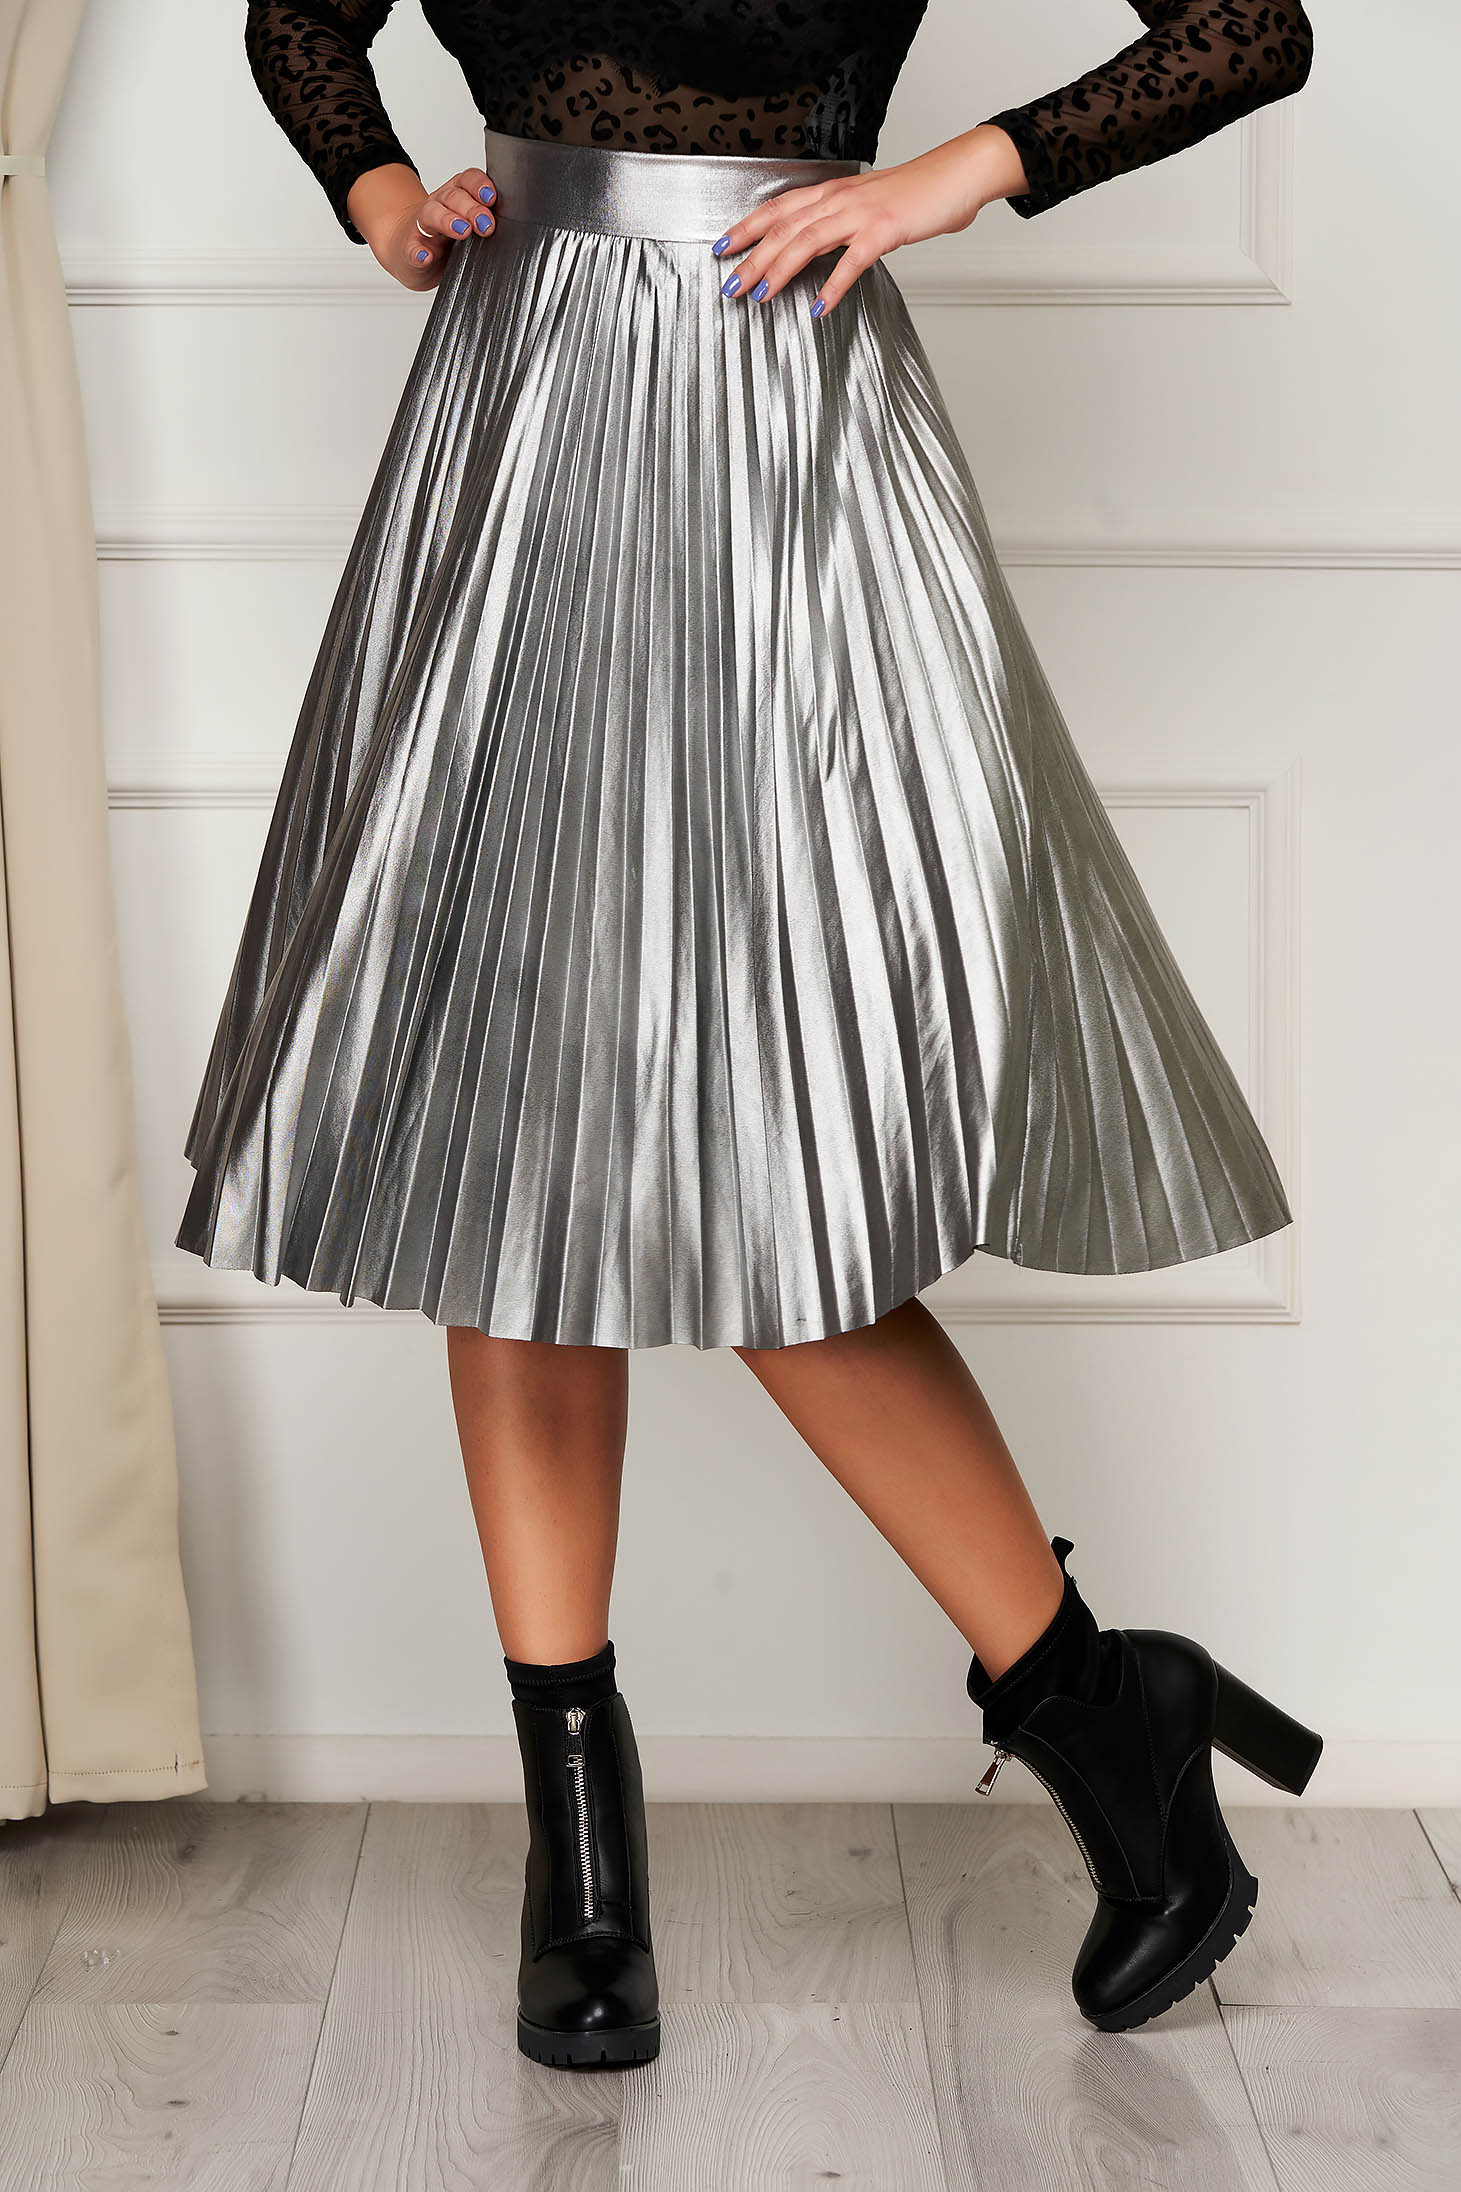 Silver skirt from ecological leather elastic waist flaring cut clubbing